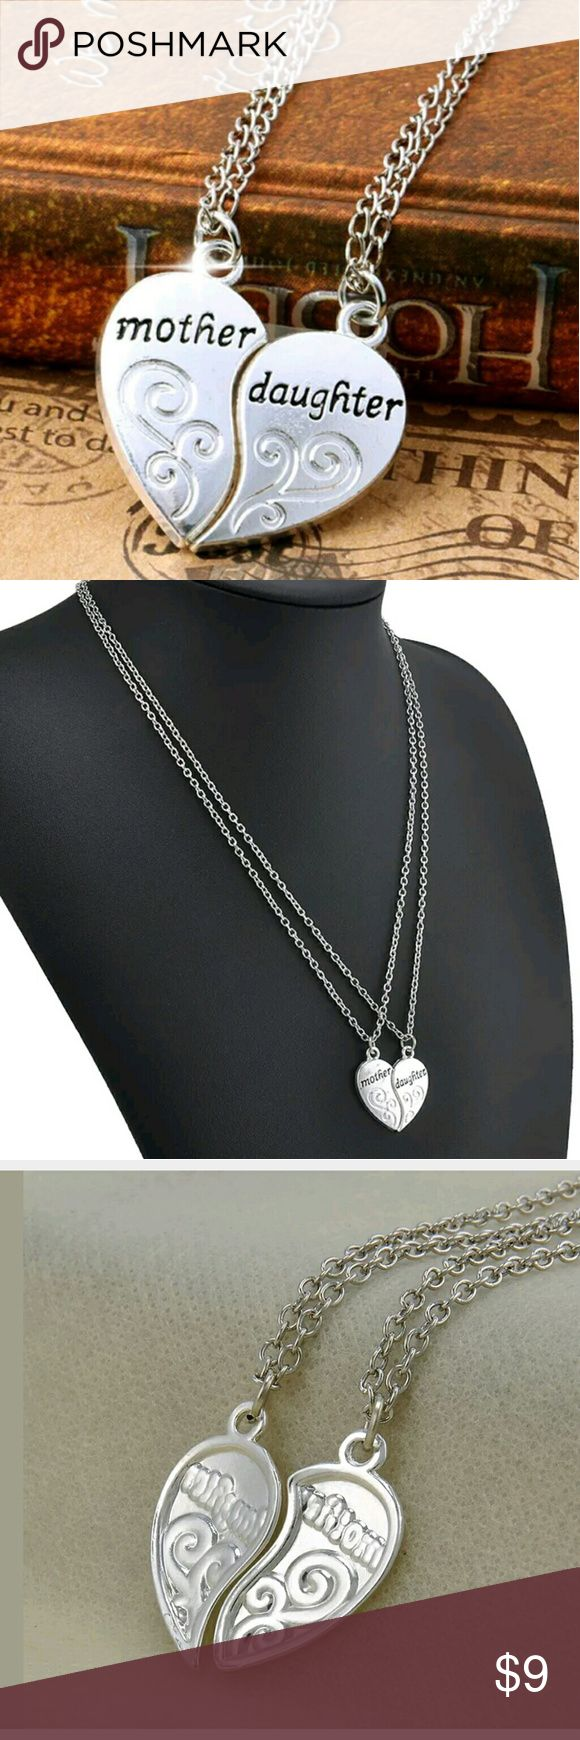 Mother Daughter necklaces Love Mothers Day Beautiful fashion necklaces. Comes as a set. Jewelry Necklaces